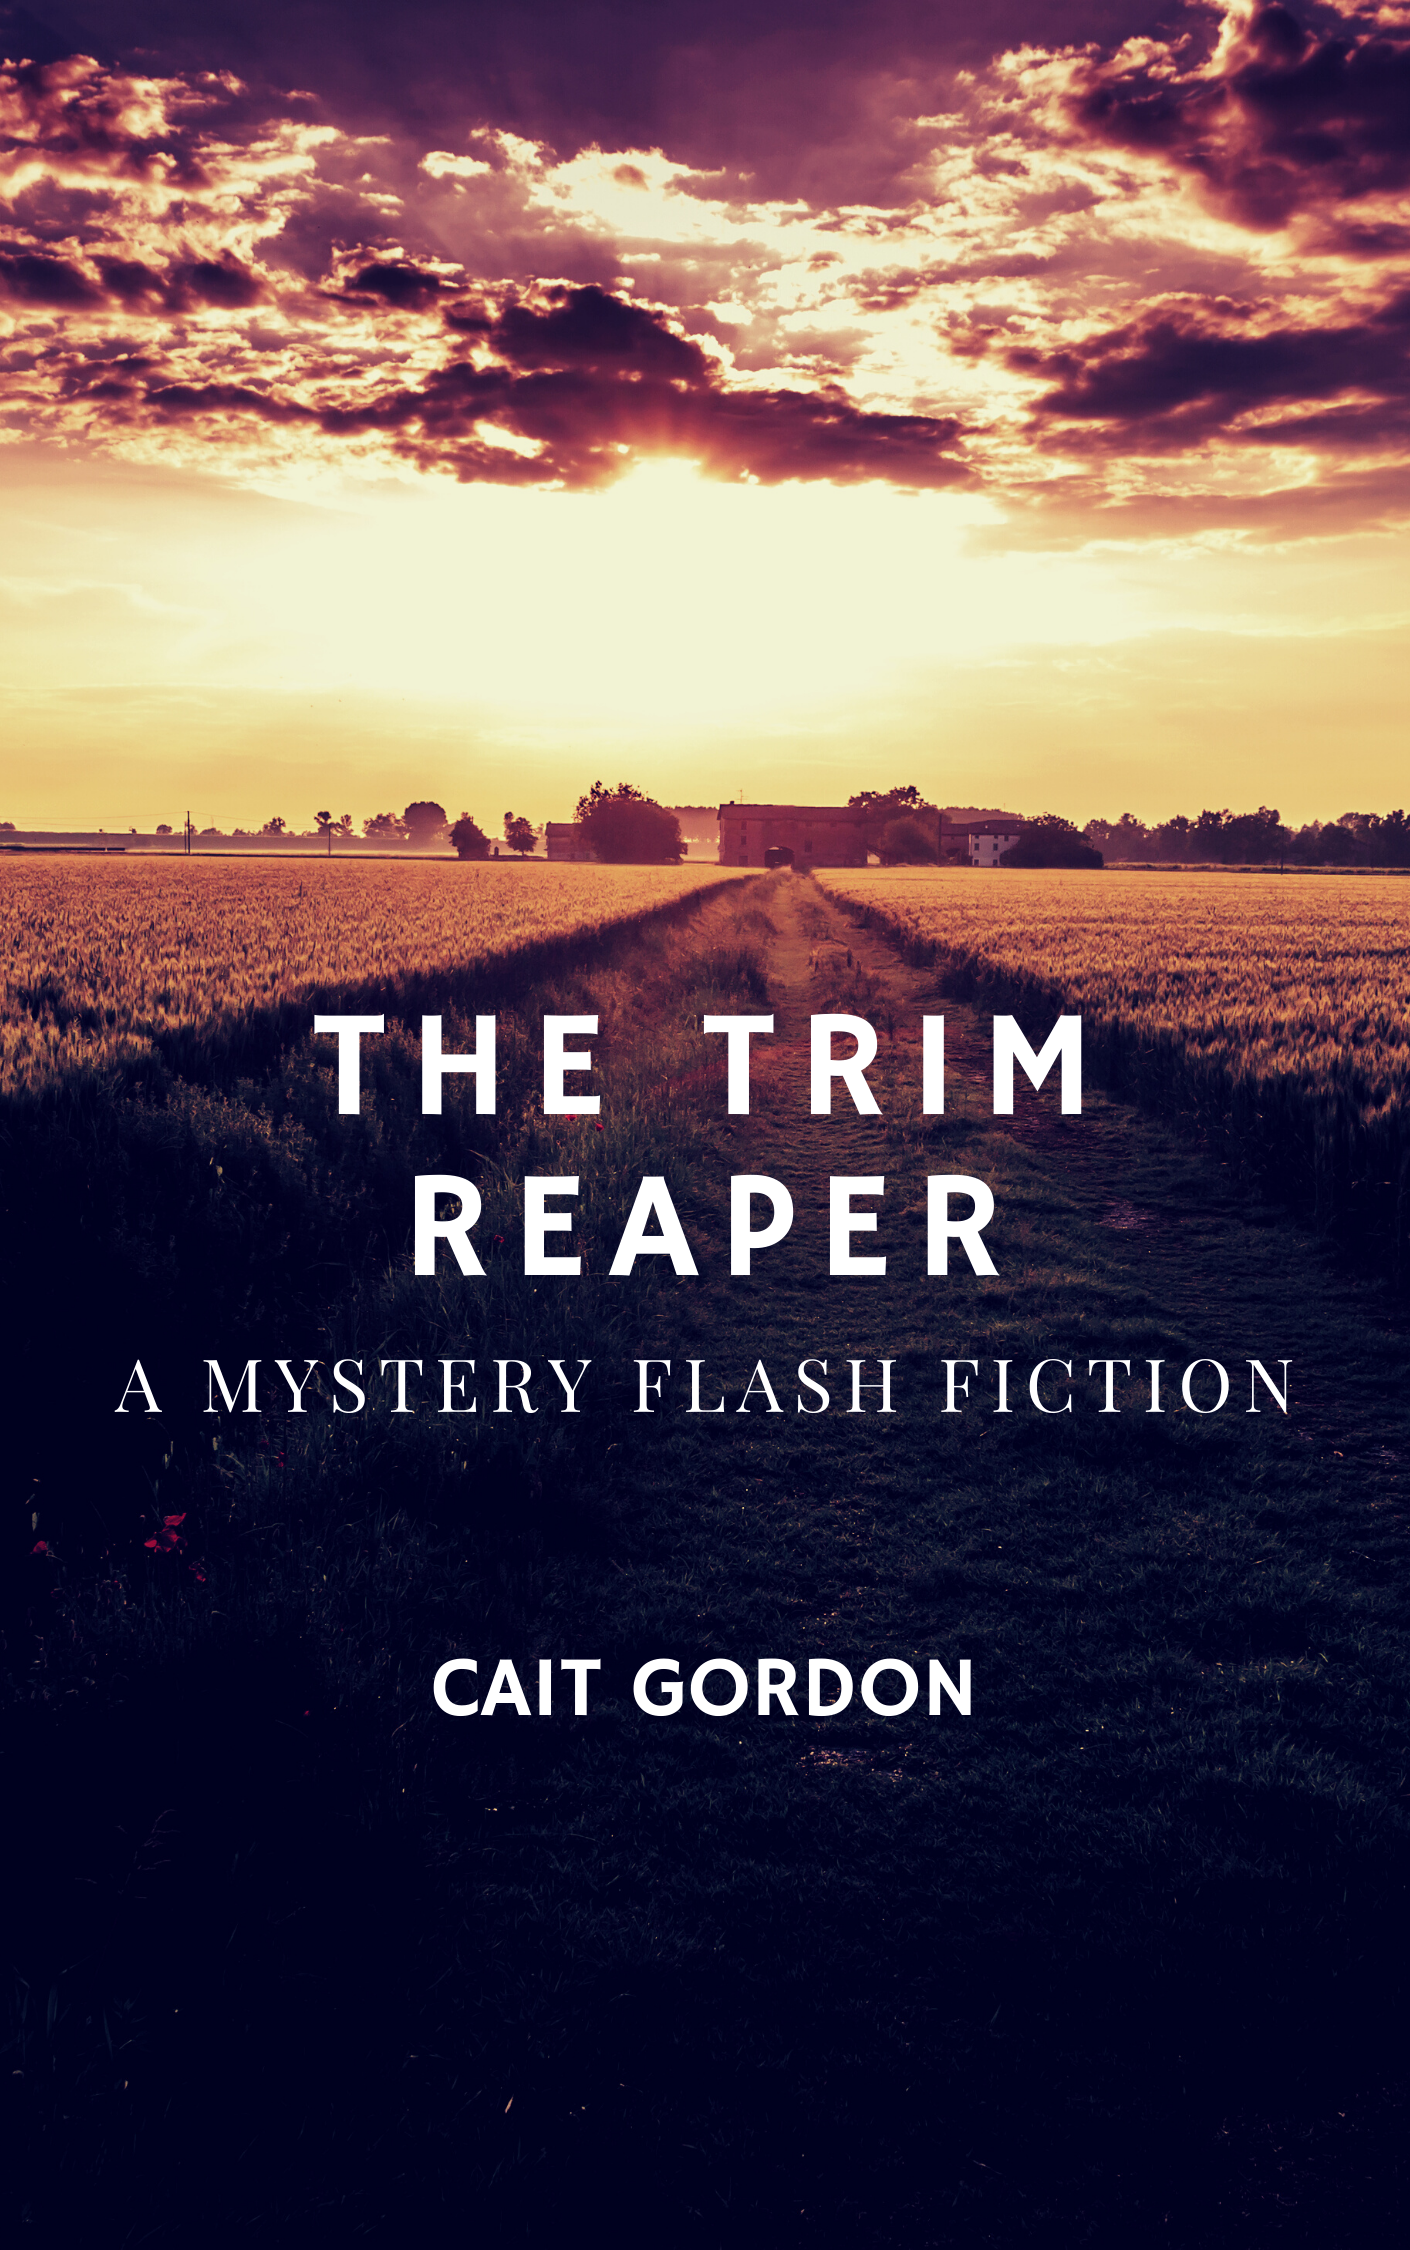 ID: A sunset on an open field, all dark browns, ambers, and ochres. Text reads: The Trim Reaper, A Mystery Flash Fiction, Cait Gordon